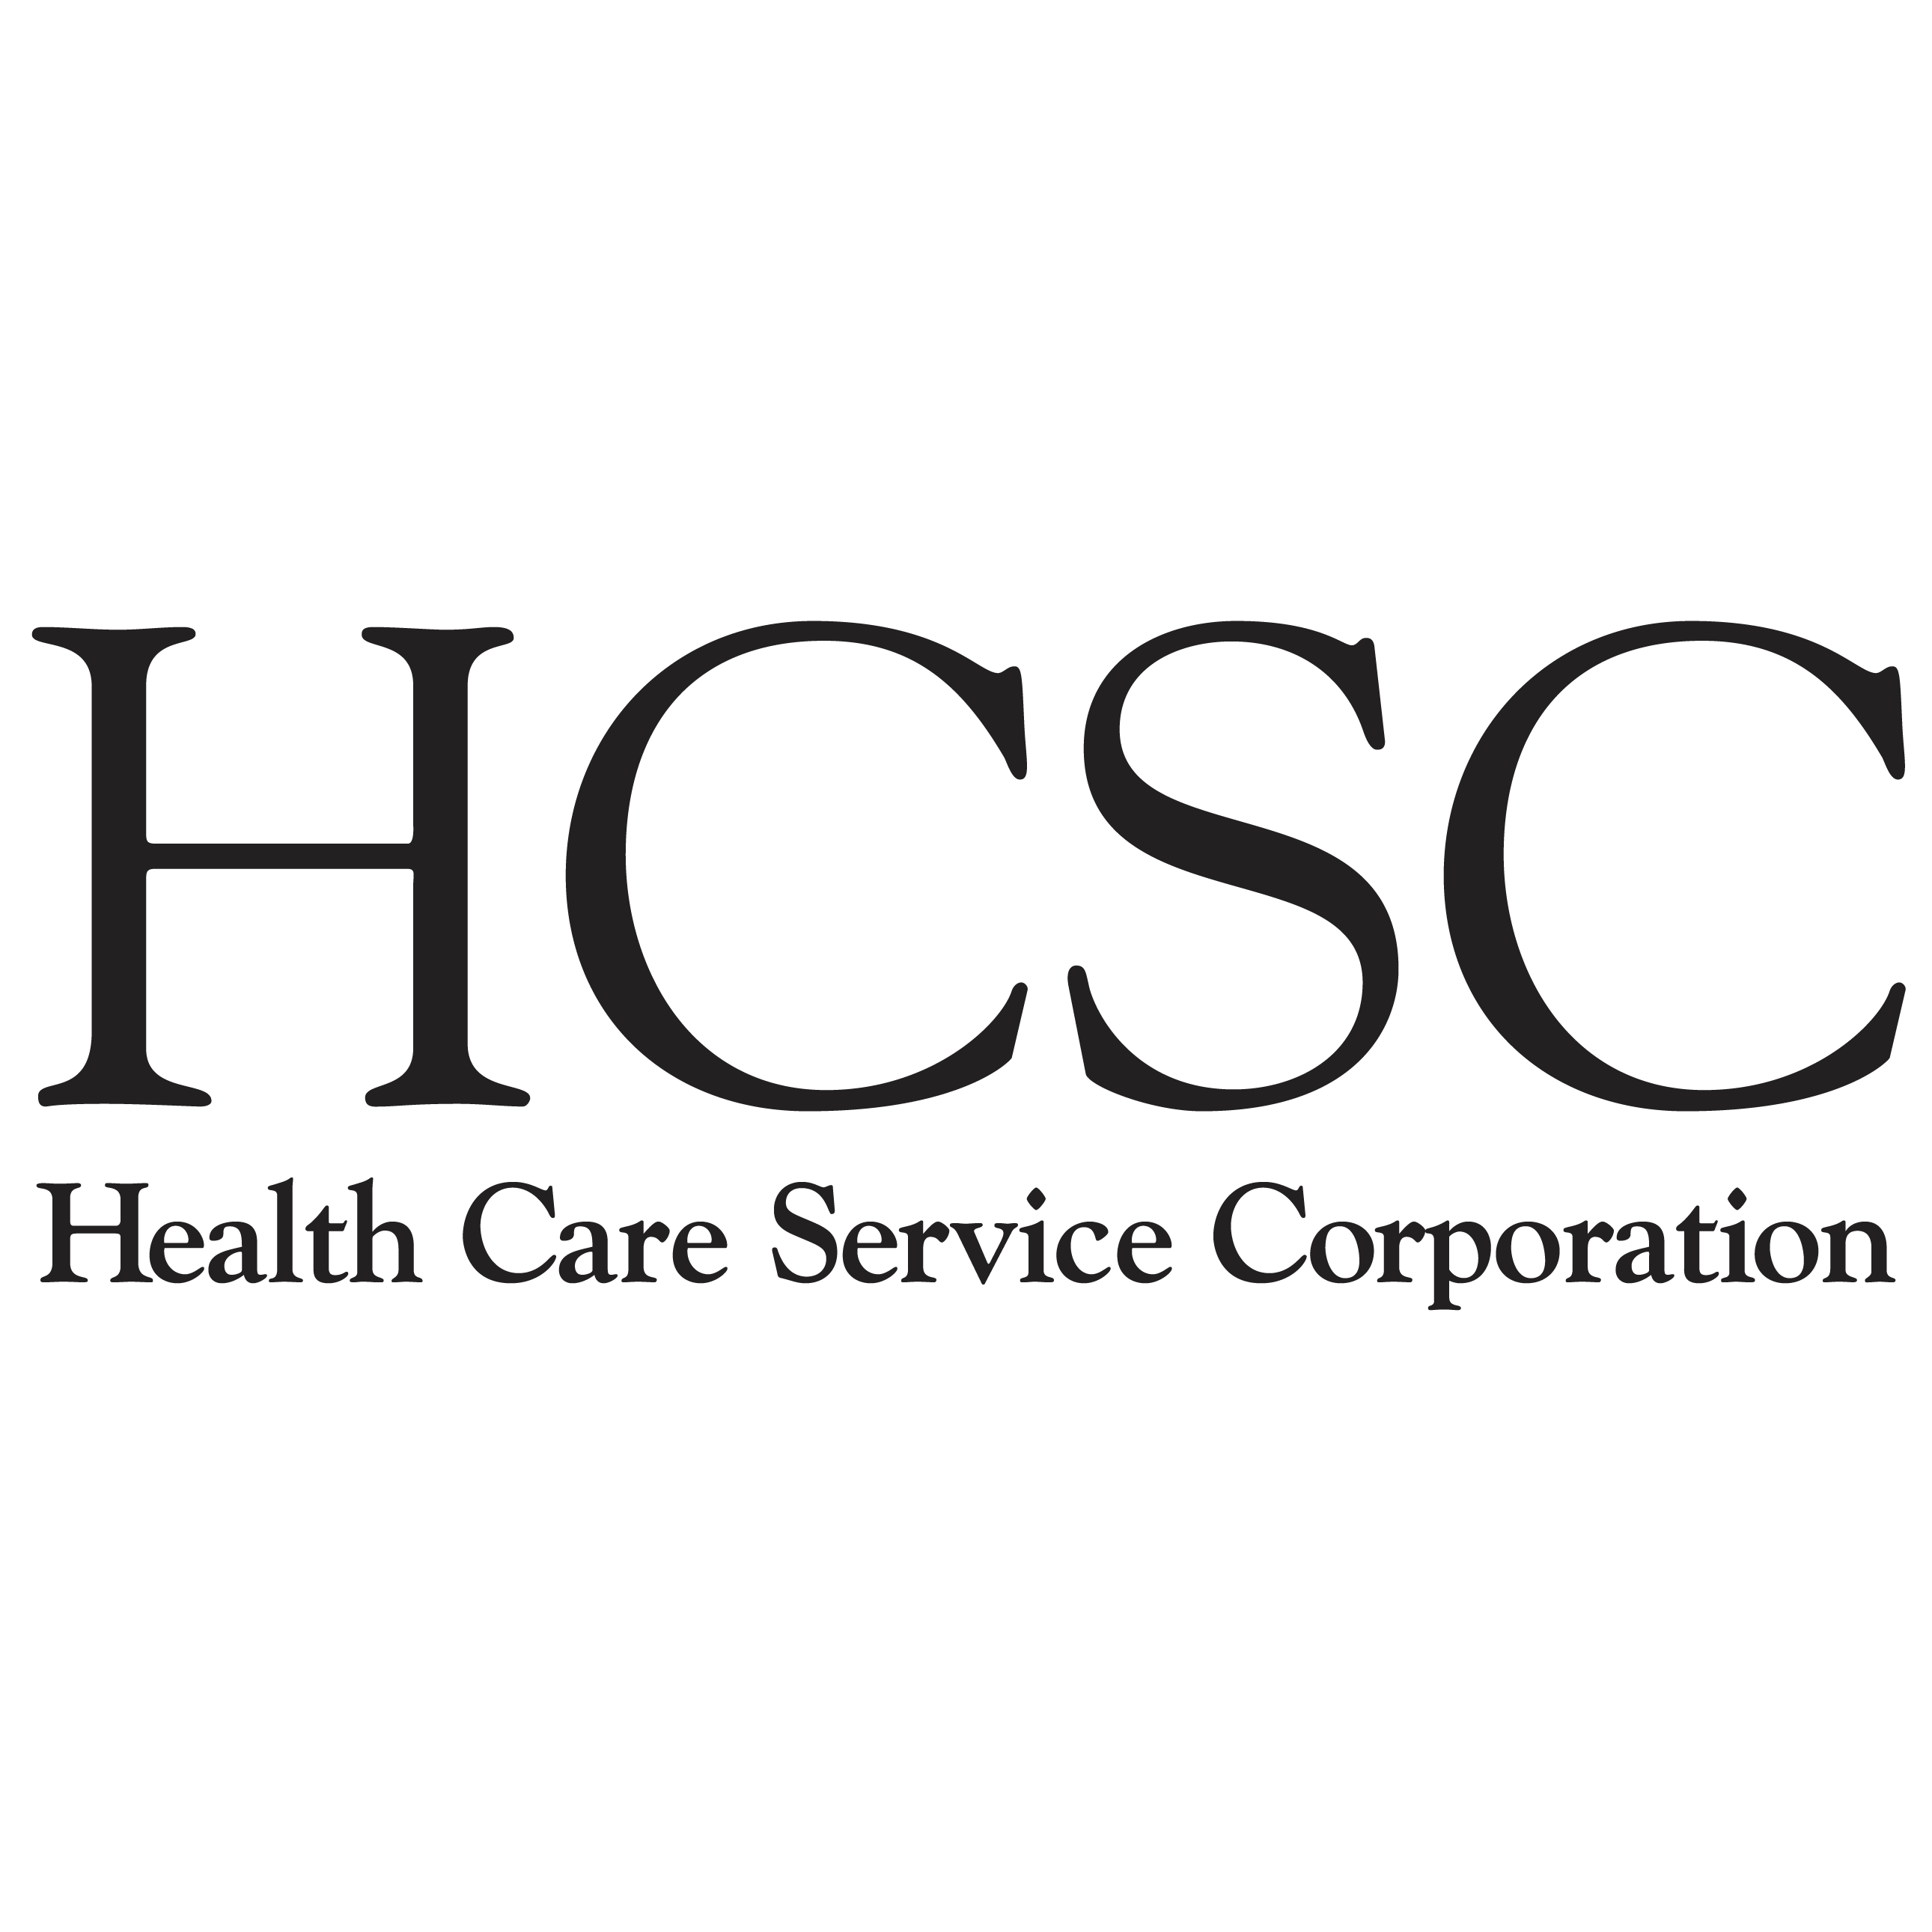 Health Care Service Corporation Logo